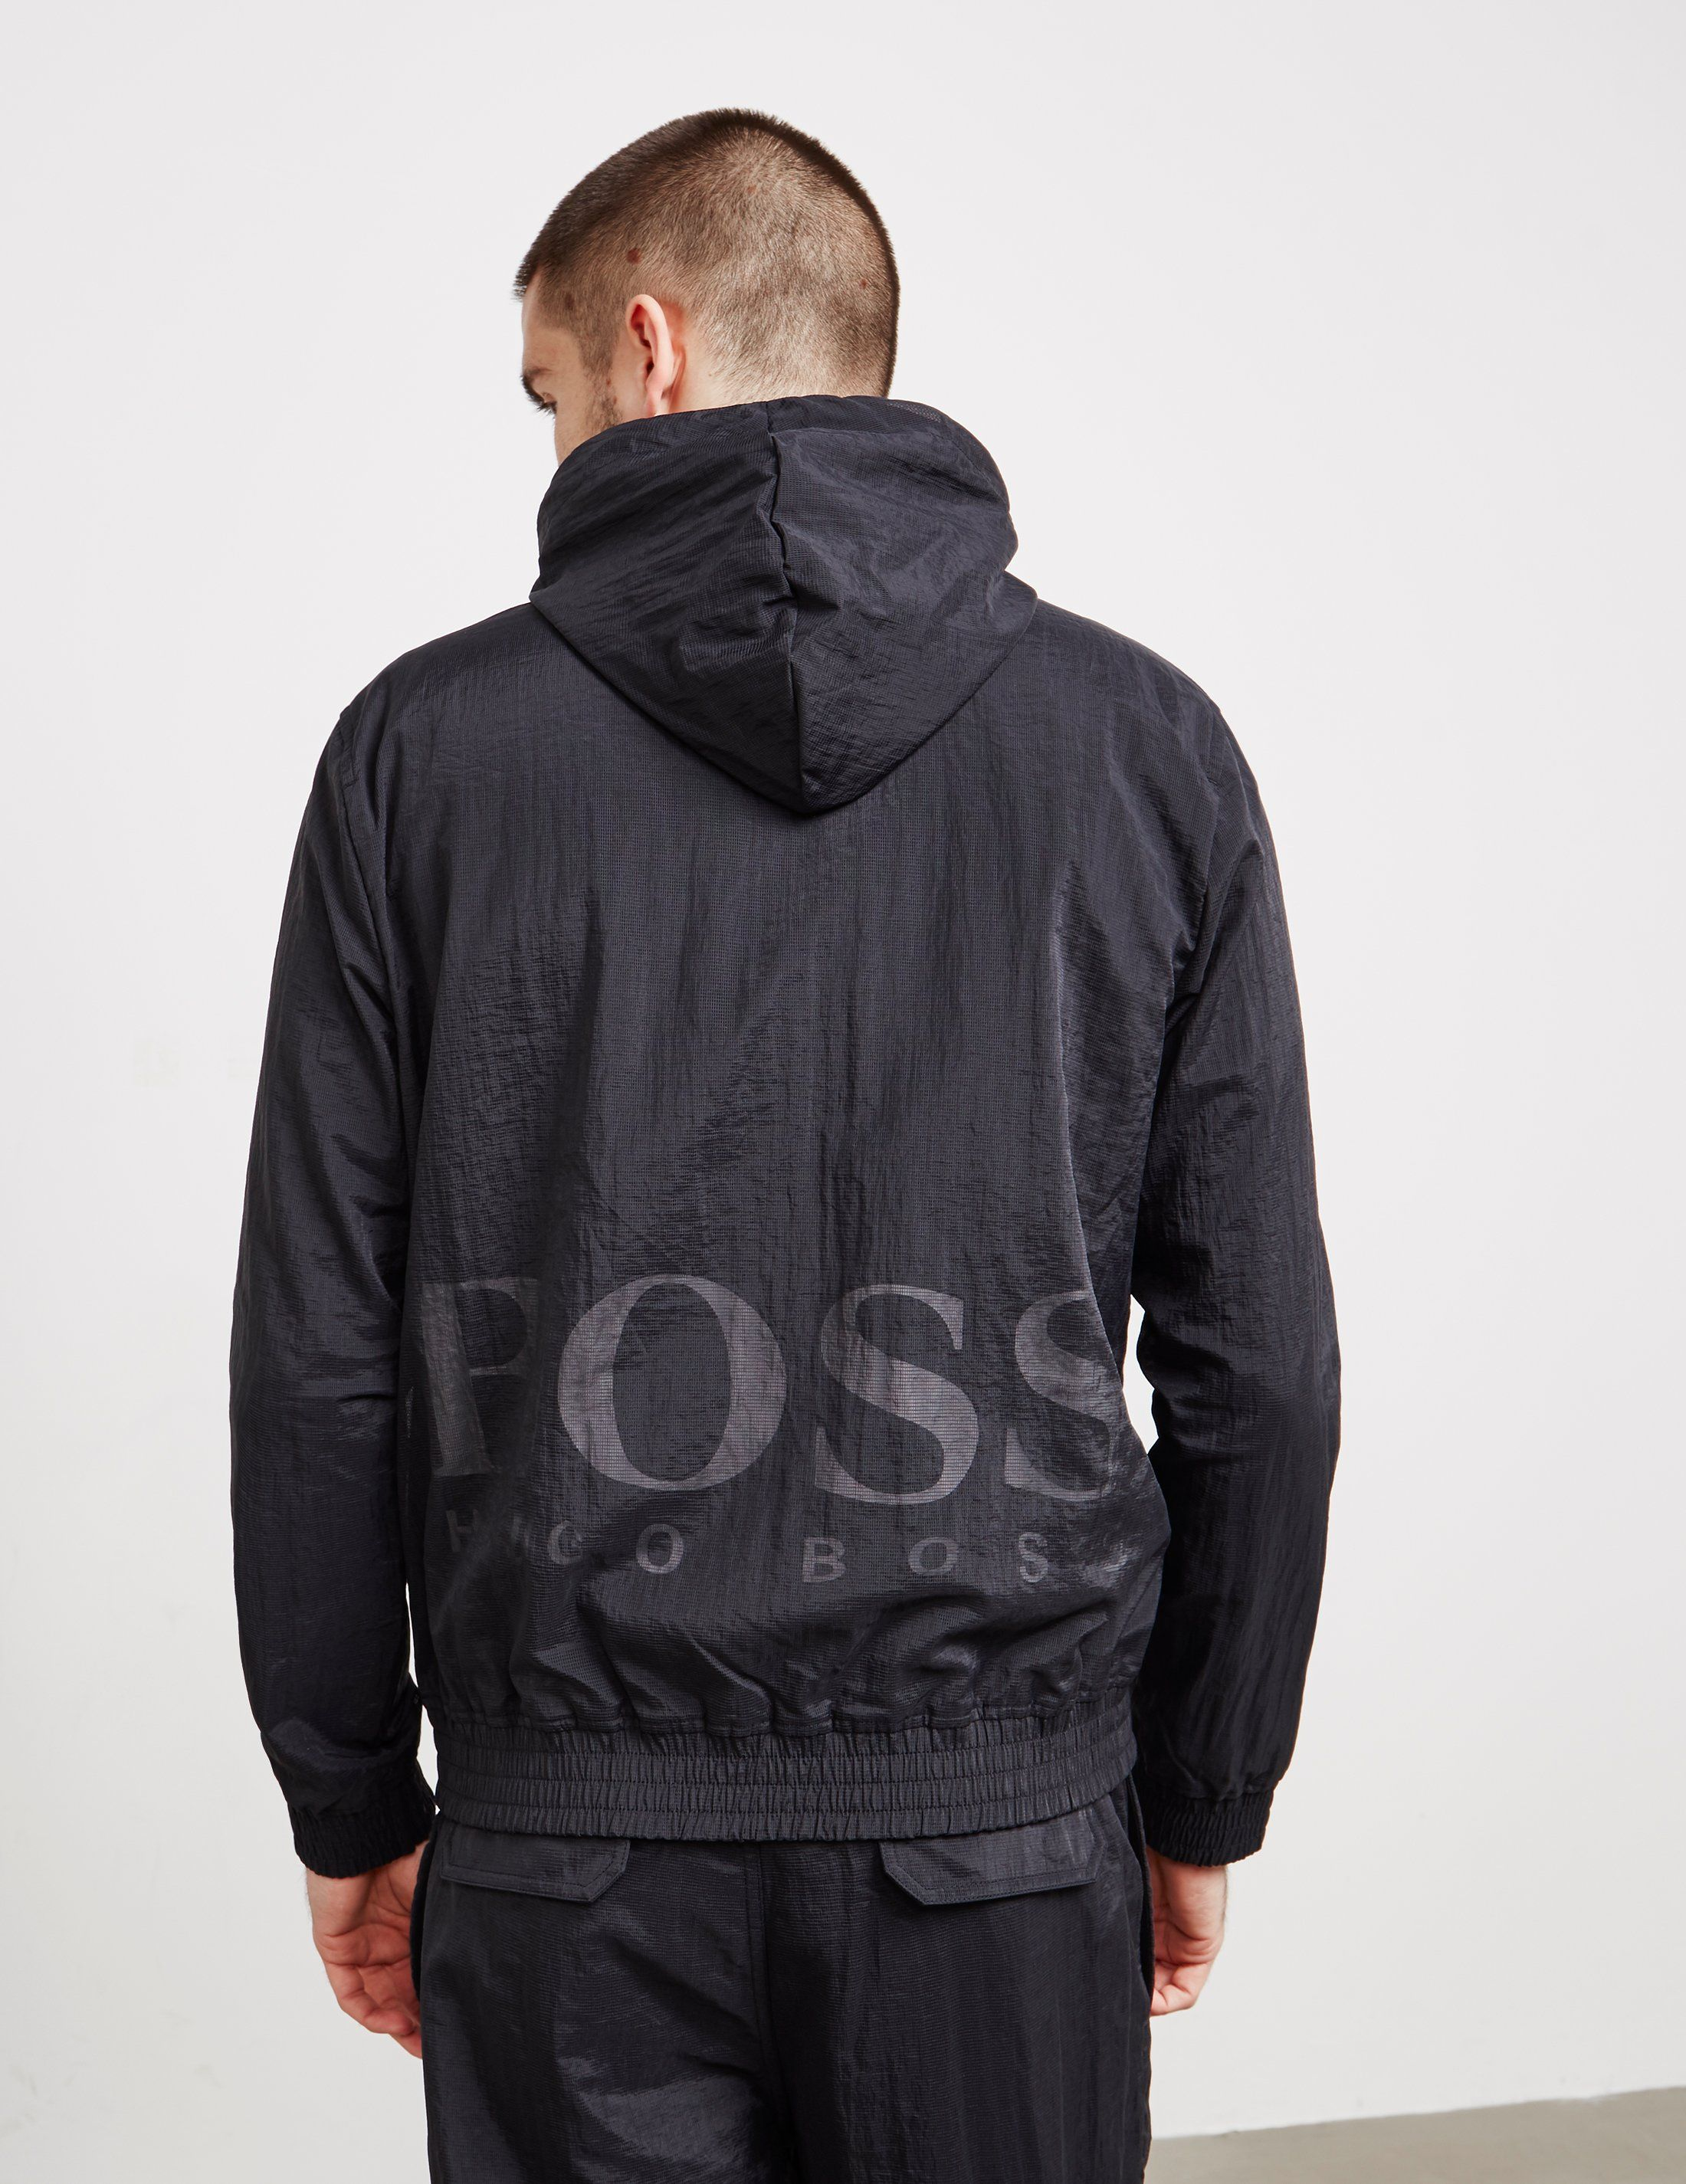 BOSS Zinc Full Zip Hoodie - Online Exclusive